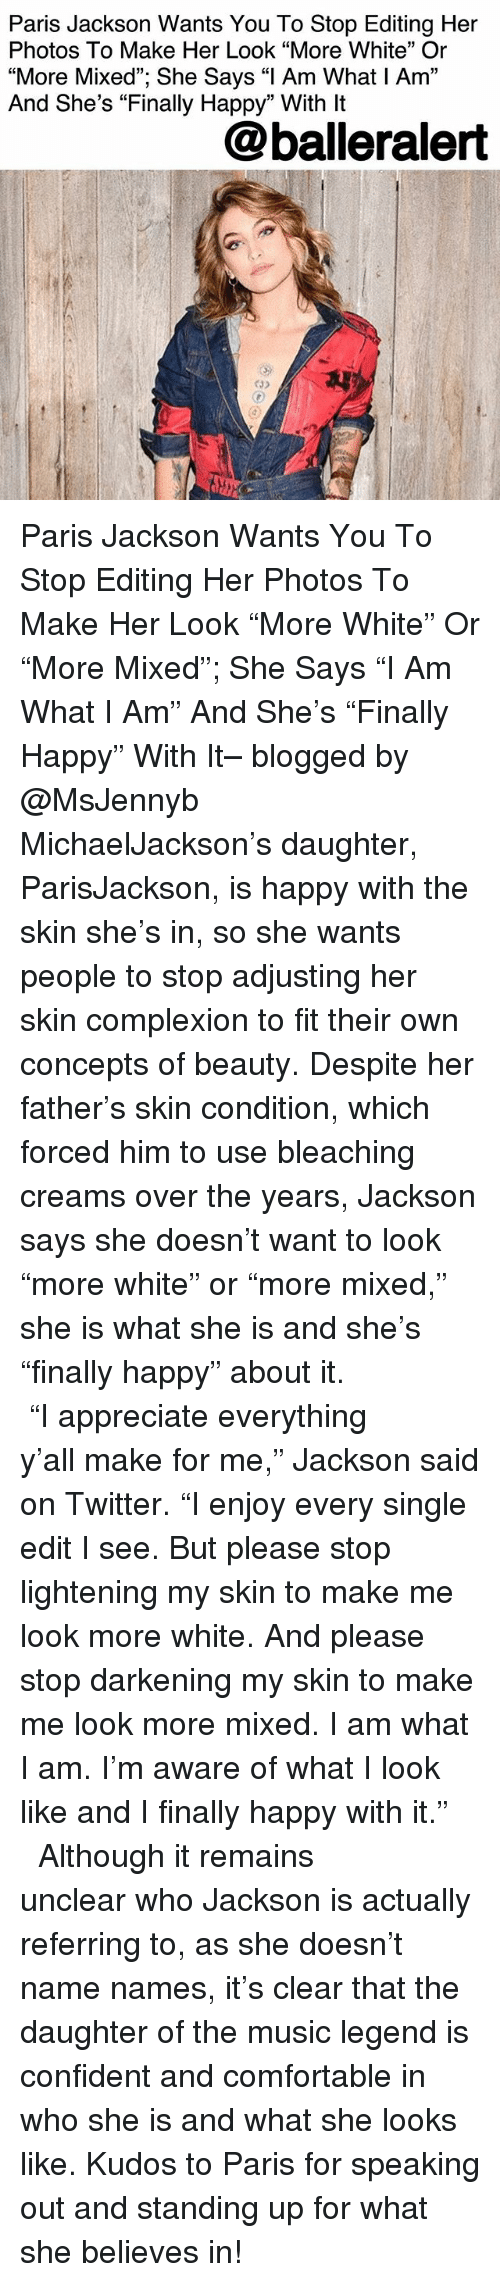 "lightening: Paris Jackson Wants You To Stop Editing Her  Photos To Make Her Look ""More White"" Or  ""More Mixed""; She Says ""l Am What I Am""  And She's ""Finally Happy"" With lt  @balleralert Paris Jackson Wants You To Stop Editing Her Photos To Make Her Look ""More White"" Or ""More Mixed""; She Says ""I Am What I Am"" And She's ""Finally Happy"" With It– blogged by @MsJennyb ⠀⠀⠀⠀⠀⠀⠀⠀⠀ ⠀⠀⠀⠀⠀⠀⠀⠀⠀ MichaelJackson's daughter, ParisJackson, is happy with the skin she's in, so she wants people to stop adjusting her skin complexion to fit their own concepts of beauty. Despite her father's skin condition, which forced him to use bleaching creams over the years, Jackson says she doesn't want to look ""more white"" or ""more mixed,"" she is what she is and she's ""finally happy"" about it. ⠀⠀⠀⠀⠀⠀⠀⠀⠀ ⠀⠀⠀⠀⠀⠀⠀⠀⠀ ""I appreciate everything y'all make for me,"" Jackson said on Twitter. ""I enjoy every single edit I see. But please stop lightening my skin to make me look more white. And please stop darkening my skin to make me look more mixed. I am what I am. I'm aware of what I look like and I finally happy with it."" ⠀⠀⠀⠀⠀⠀⠀⠀⠀ ⠀⠀⠀⠀⠀⠀⠀⠀⠀ Although it remains unclear who Jackson is actually referring to, as she doesn't name names, it's clear that the daughter of the music legend is confident and comfortable in who she is and what she looks like. Kudos to Paris for speaking out and standing up for what she believes in!"